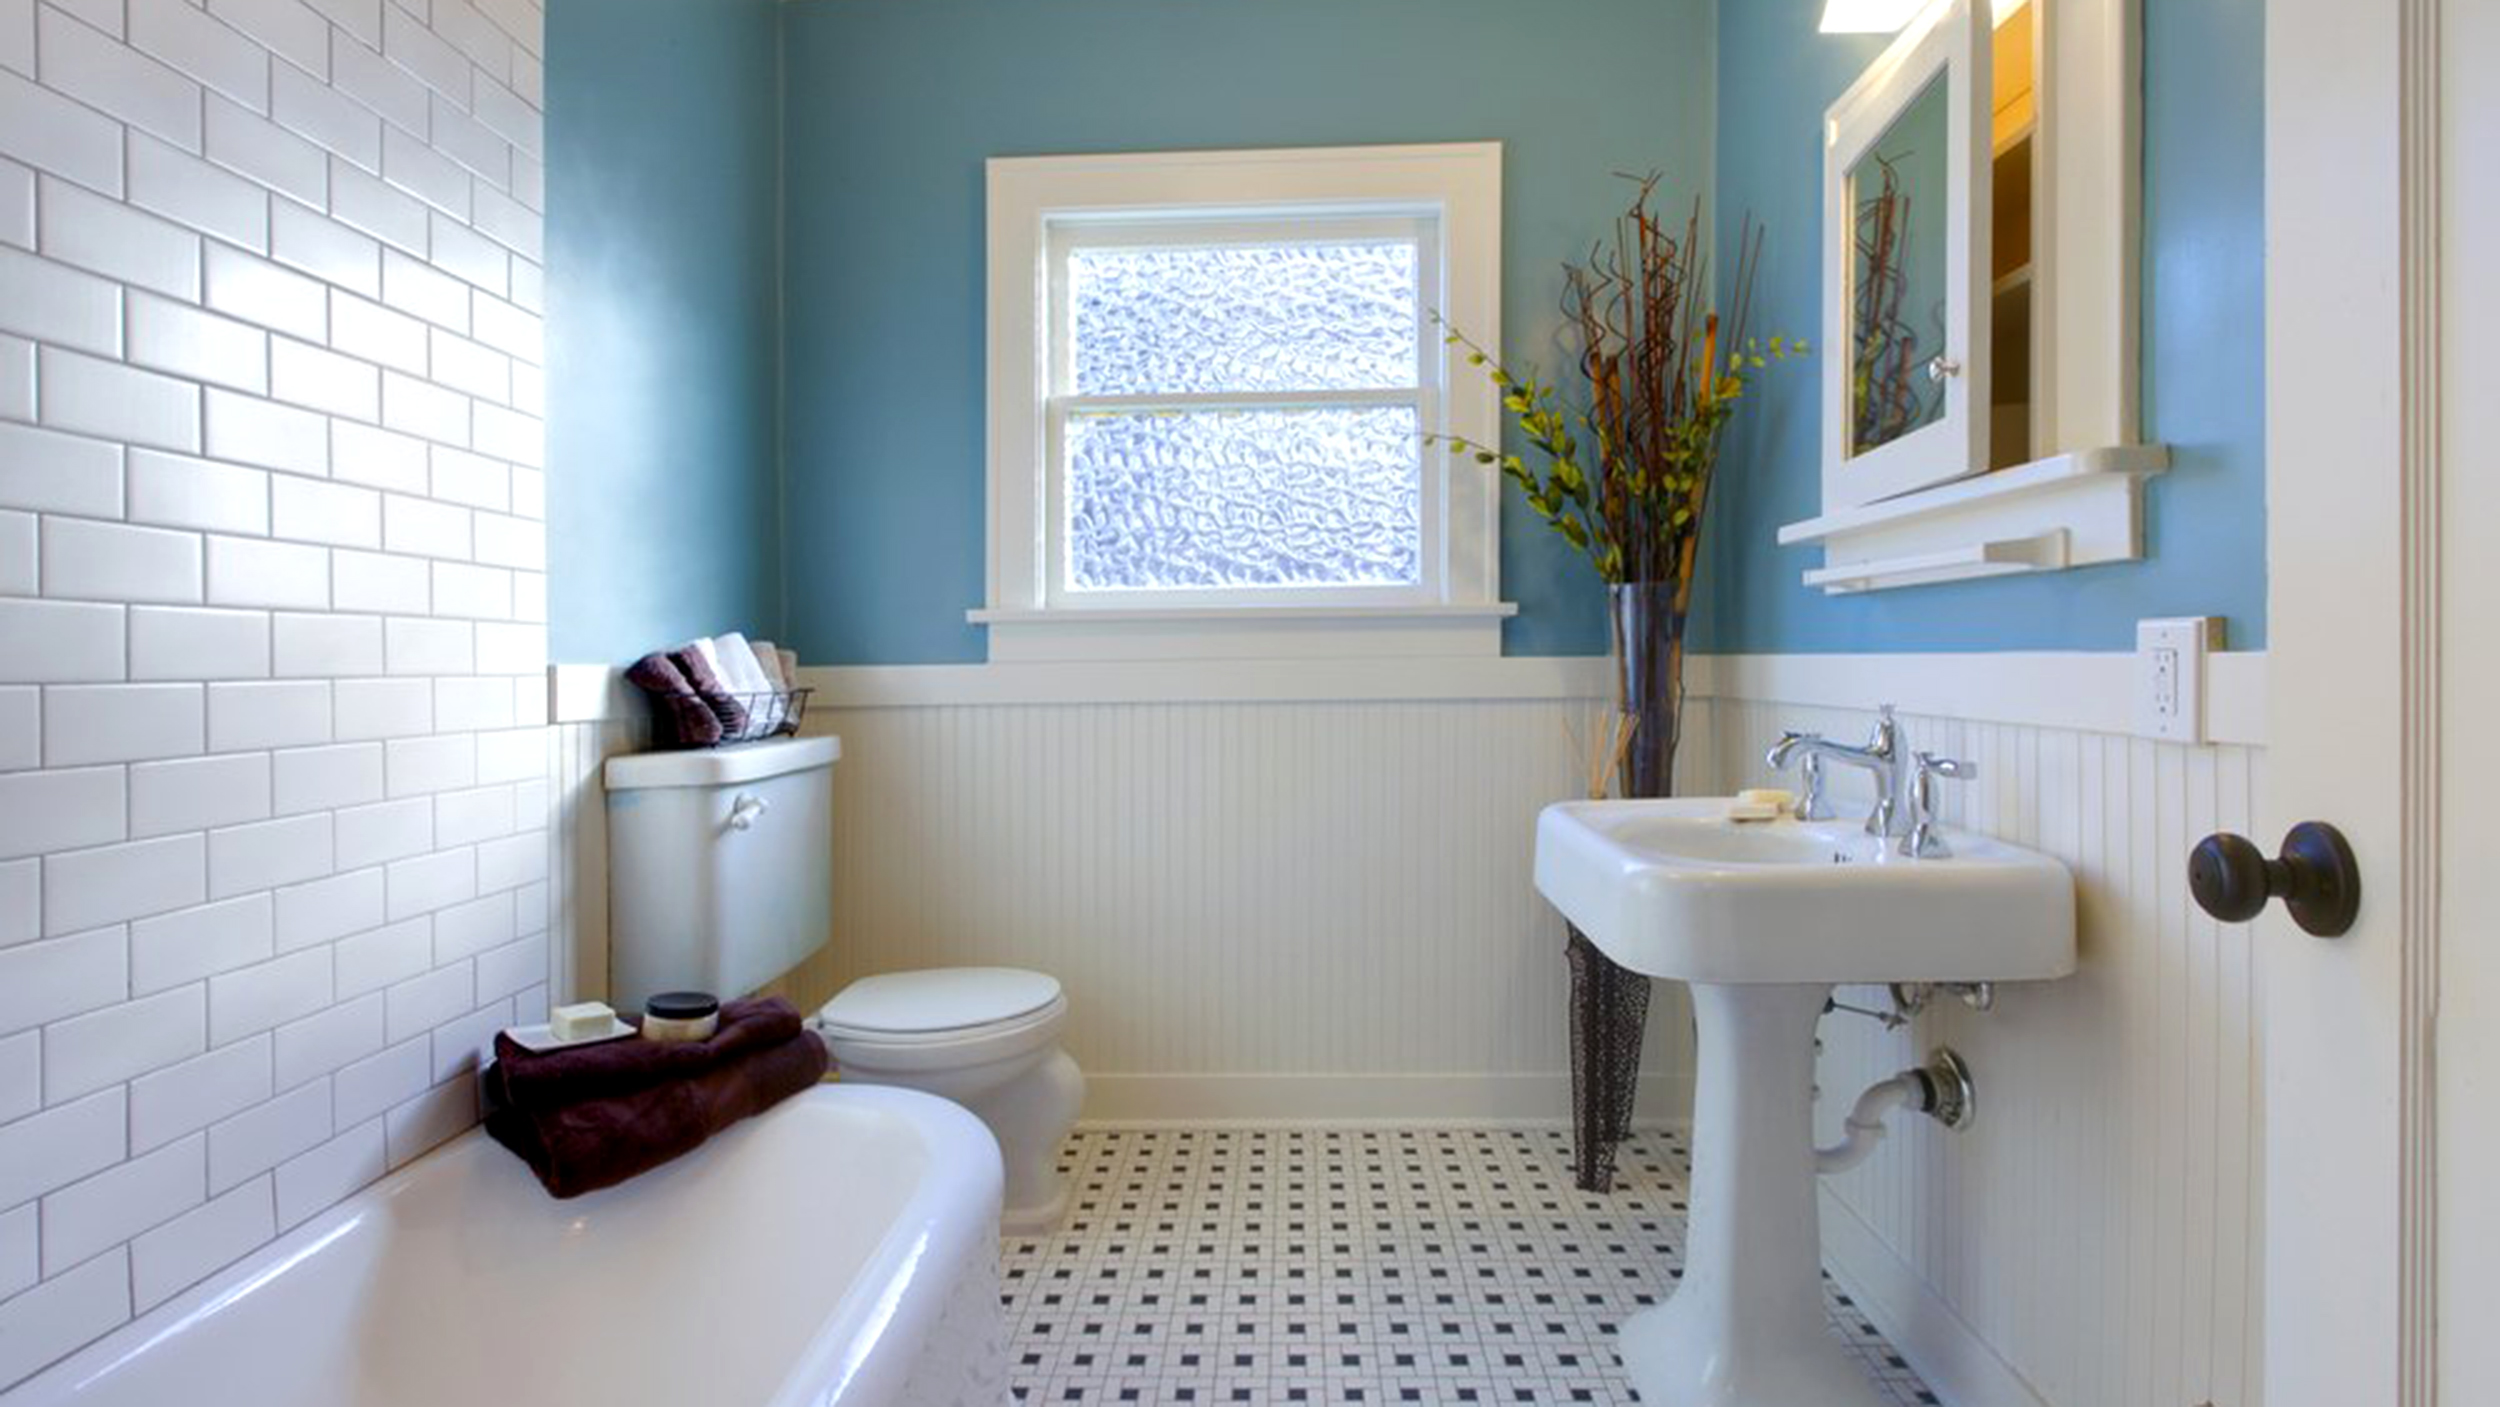 10 Things Your Plumber Wishes You Wouldnt Do